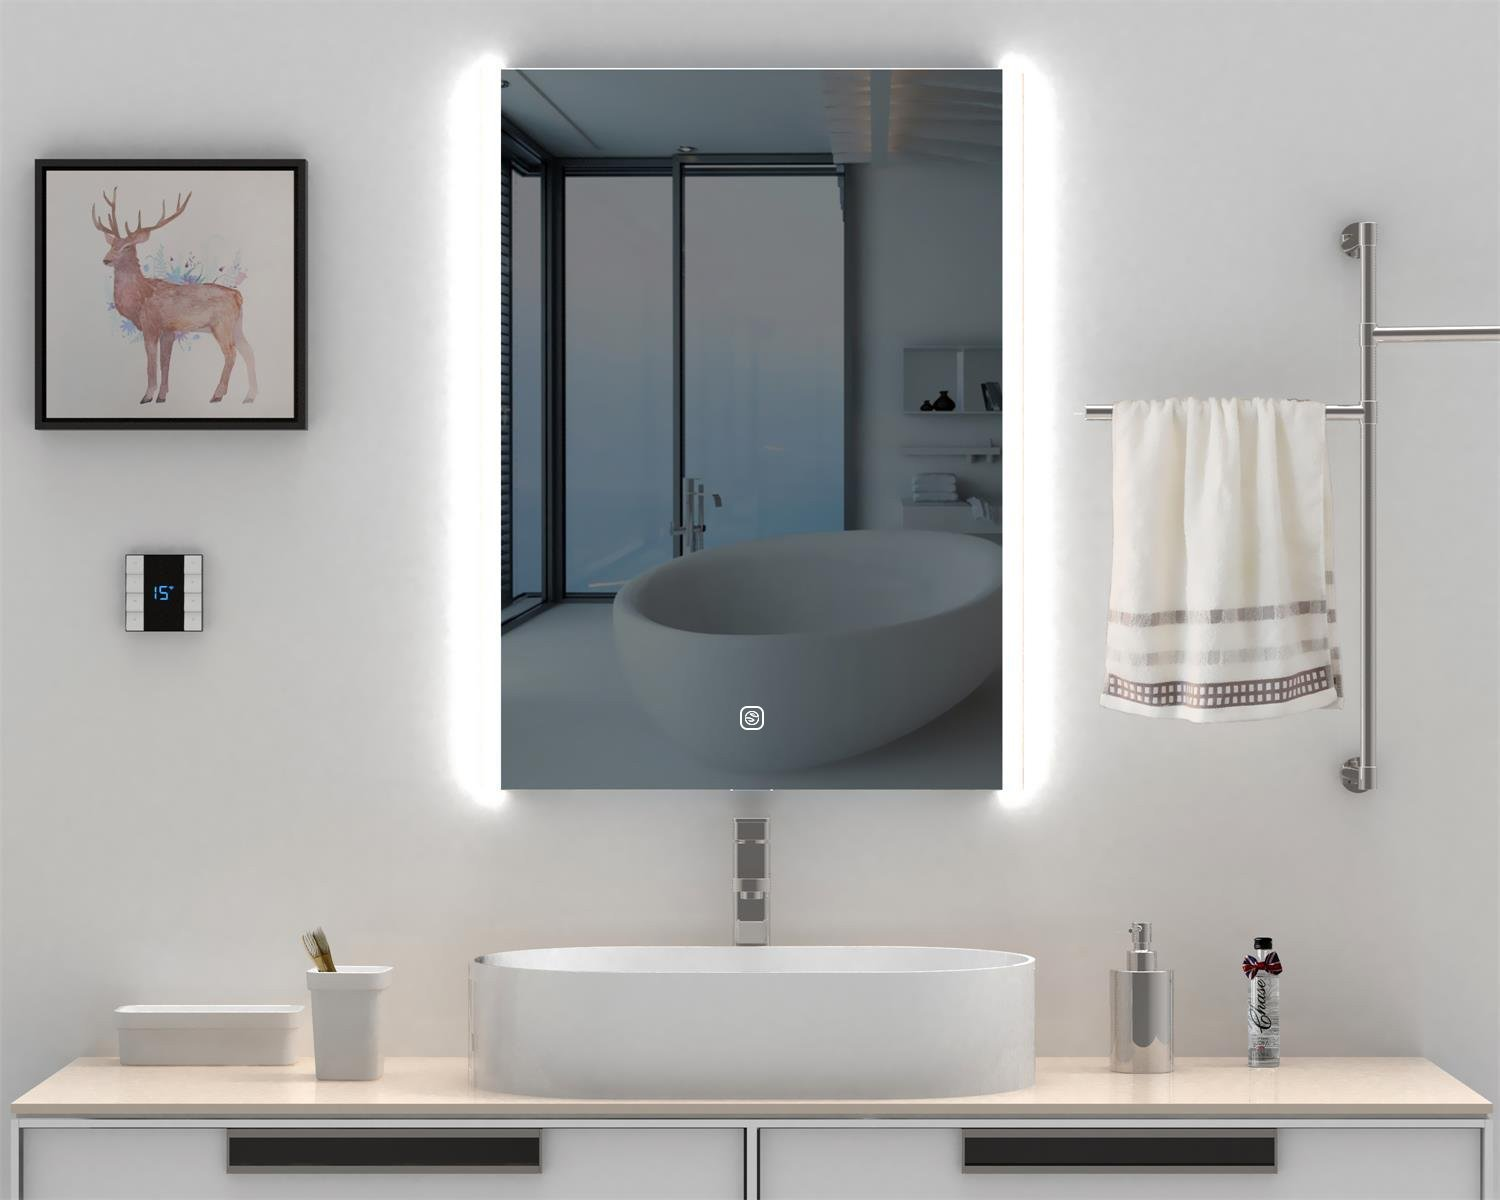 HEYNEMO 32''x24'' Bathroom LED Lighted Vanity Mirror Wall-Mounted Makeup Mirror, LED Lights Vanity Dimmer Touch Switch Waterproof Illuminated Mirror for Home Multipurpose, ONE-Year Warranty